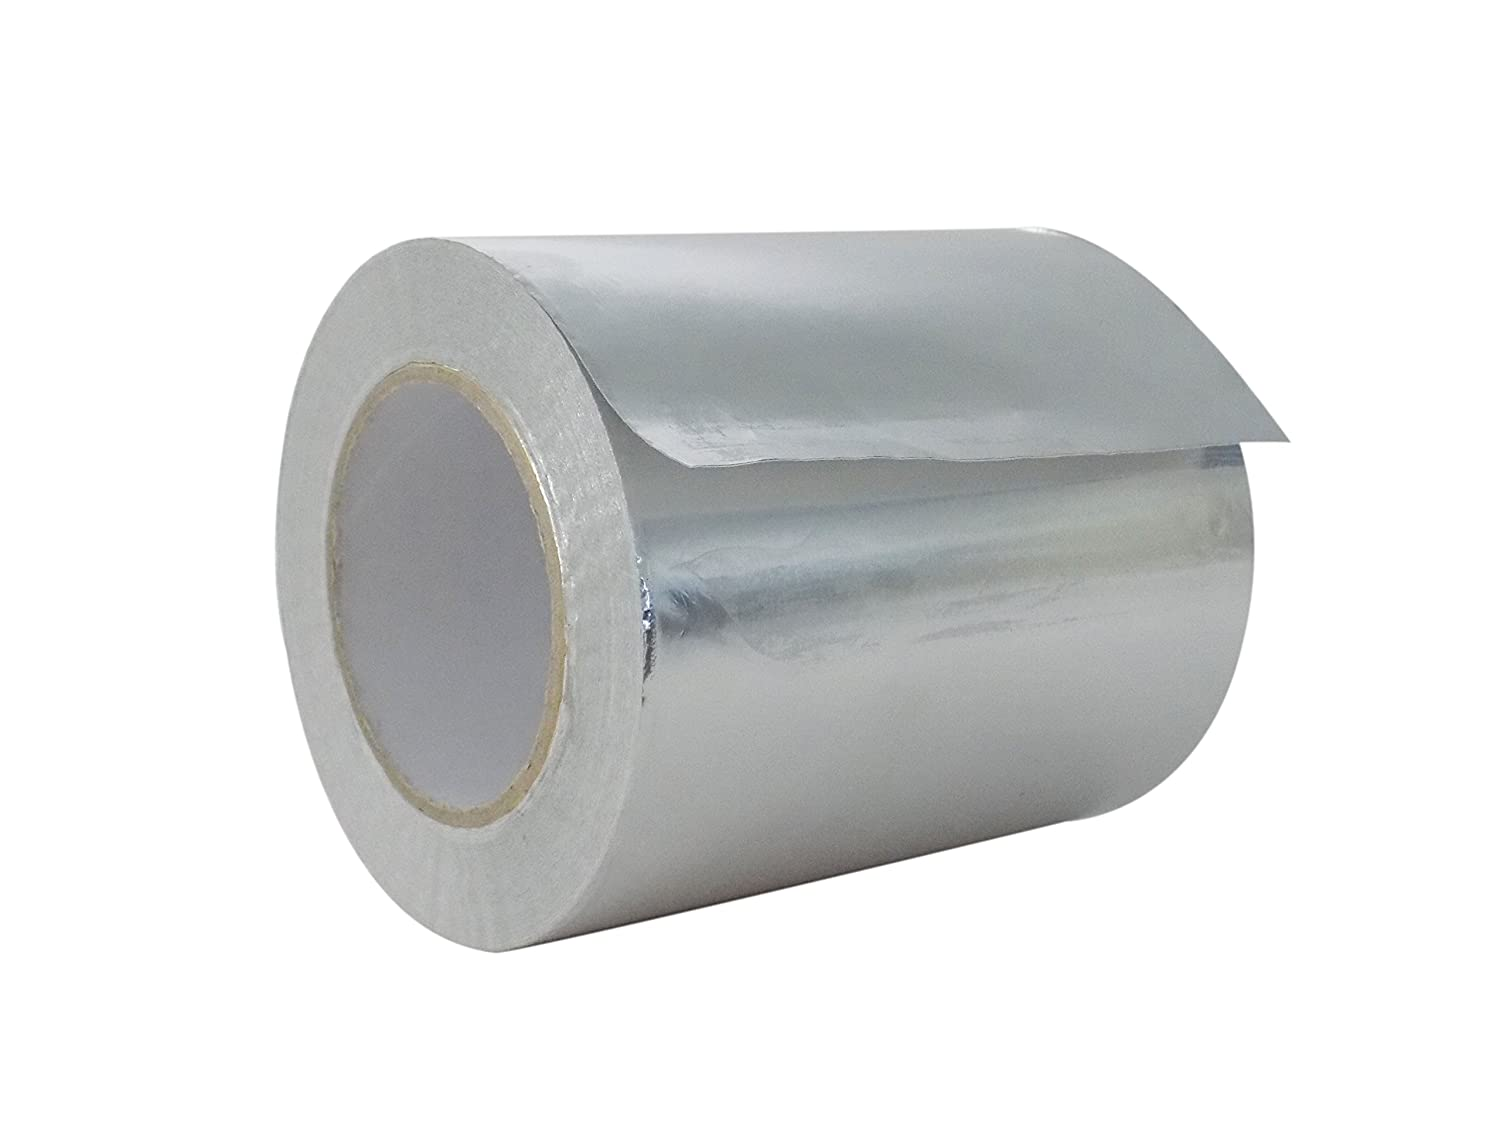 WOD AF-20R Premium Grade General Purpose Heat Shield Resistant Aluminum Foil Tape - Good for HVAC, Air Ducts, Insulation (Available in Multiple Sizes): 6 in. wide x 50 yds.